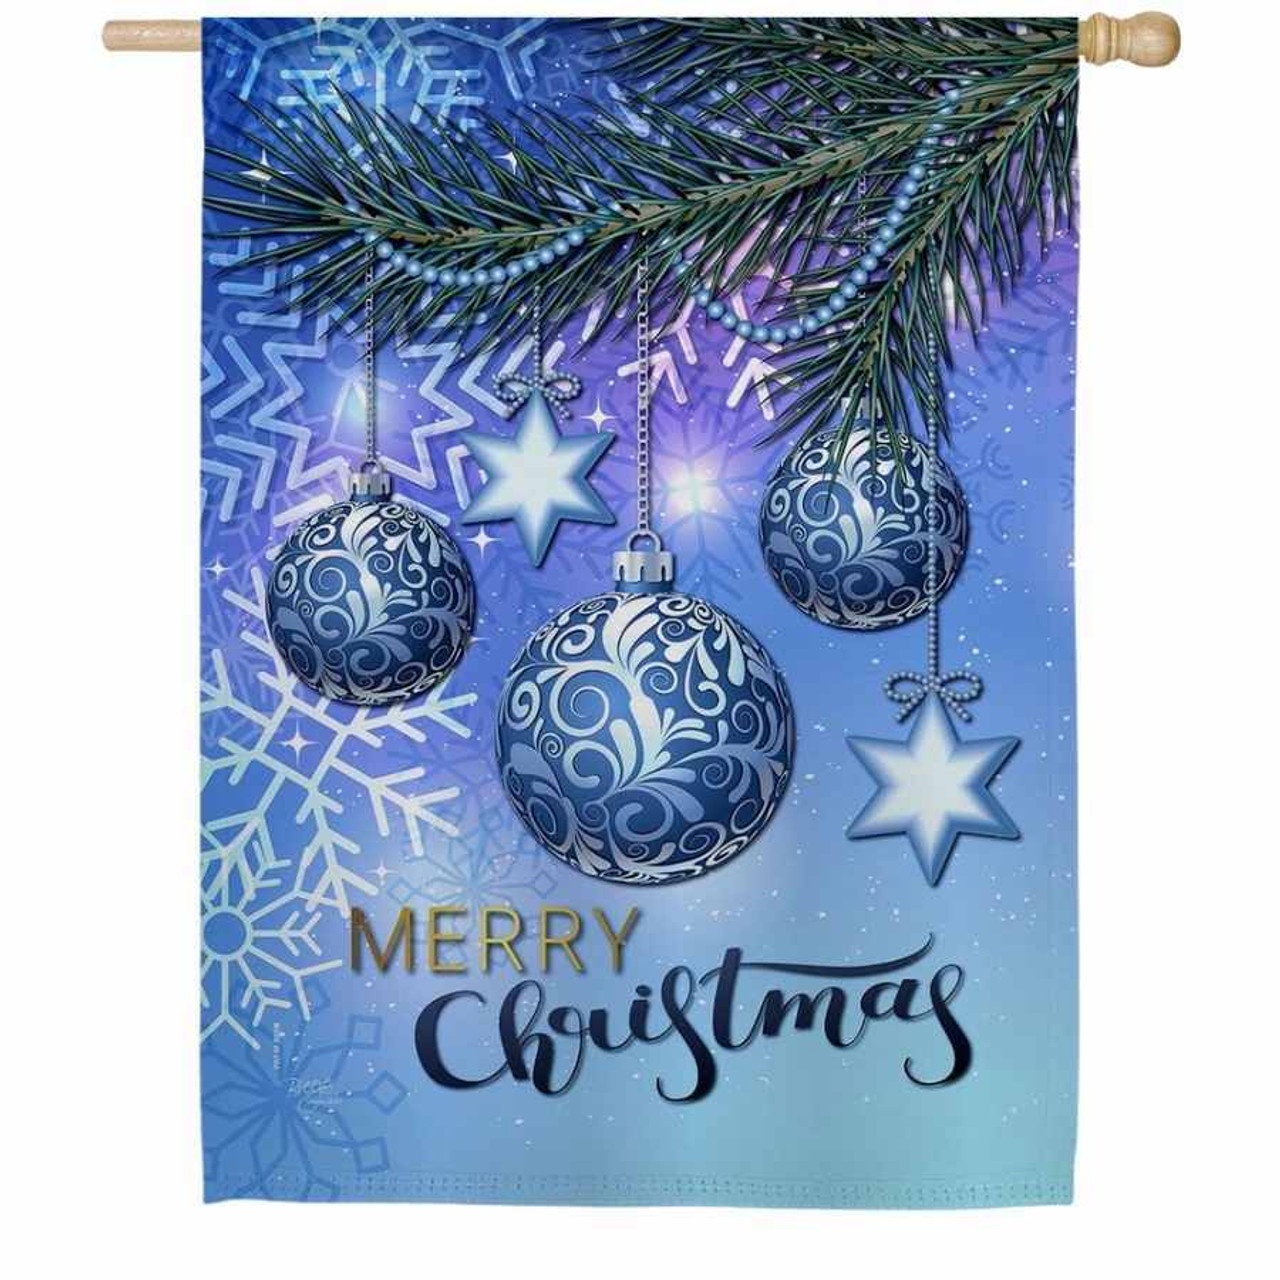 """A house flag that has a blue background with white snowflakes. A pine tree branch comes in from the side and has 3 blue Christmas ornaments hanging from it. """"Merry Christmas"""" is written across the bottom."""